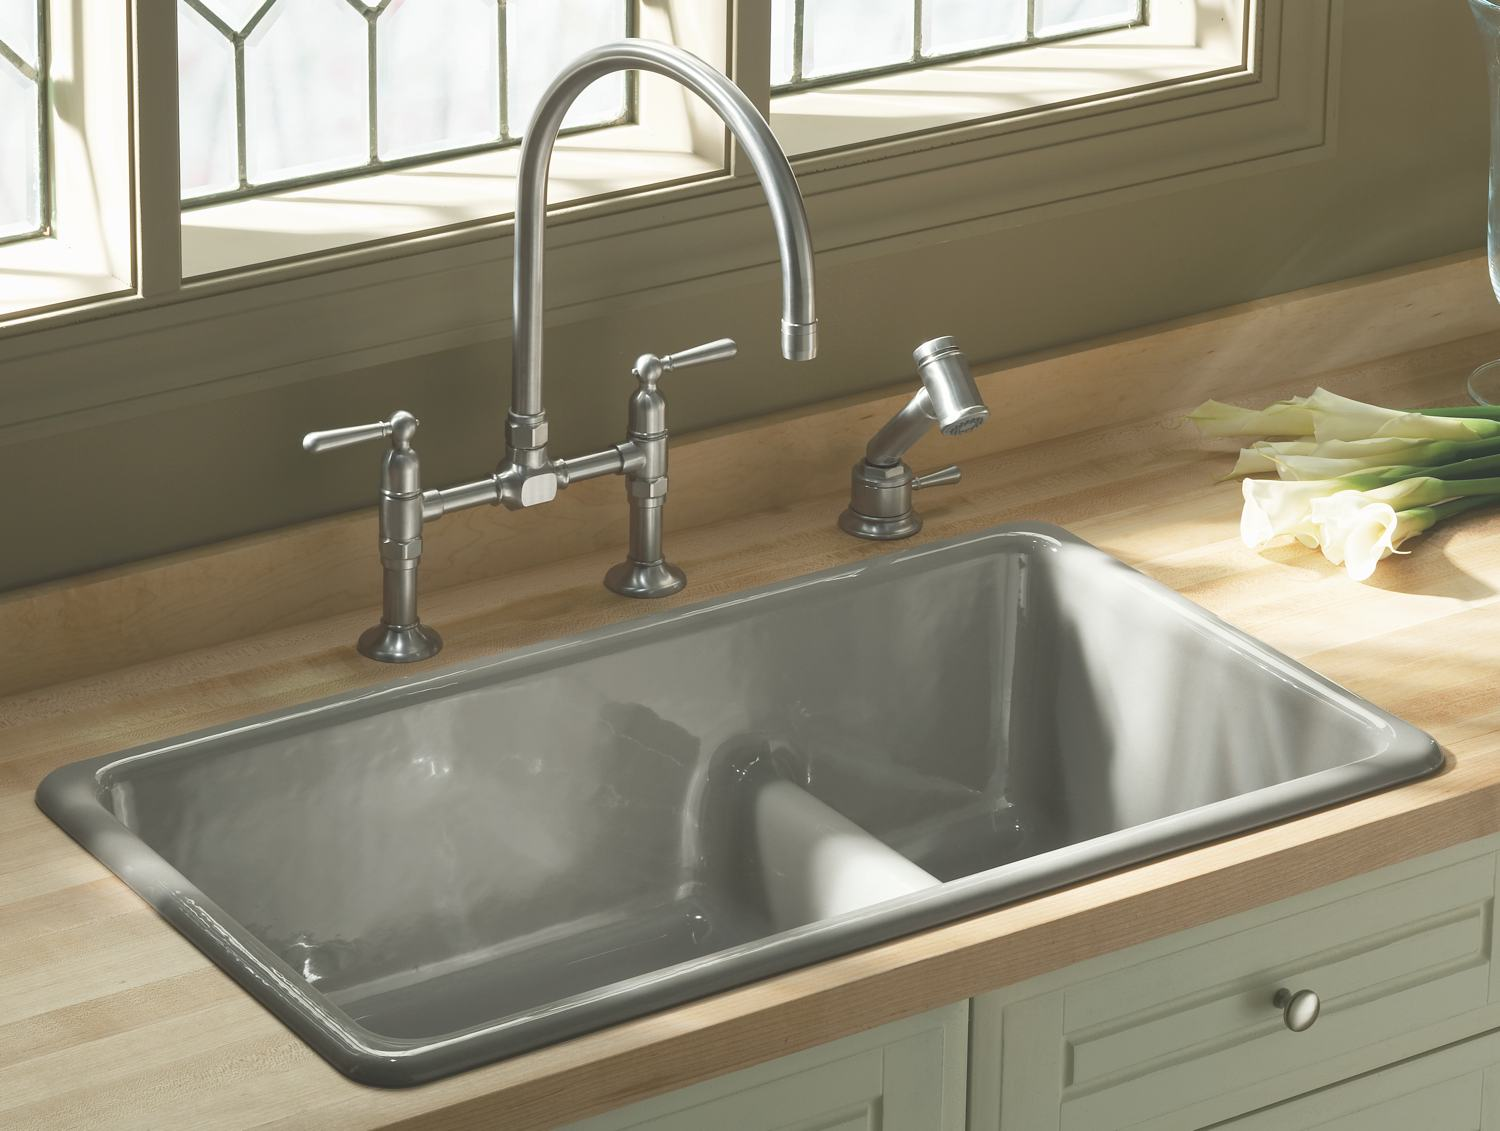 kohler sinks with faucet under the window for kitchen decor ideas